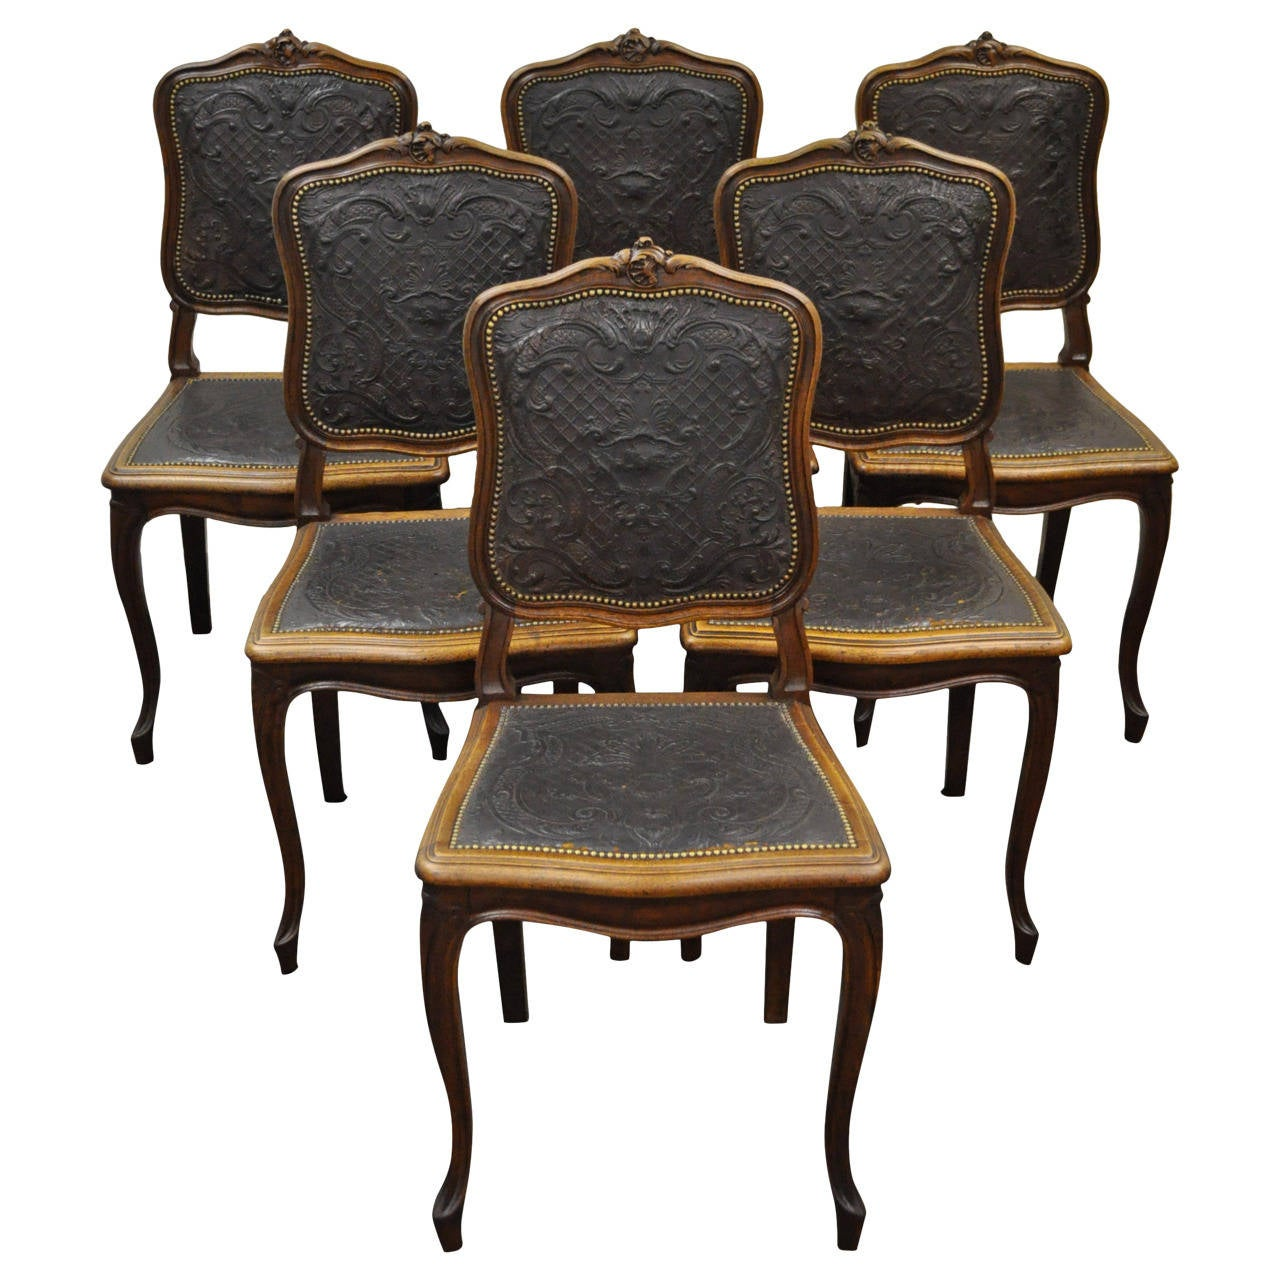 Louis xv dining chair - Set Of Six French Louis Xv Style Walnut Dining Chairs With Embossed Leather 1